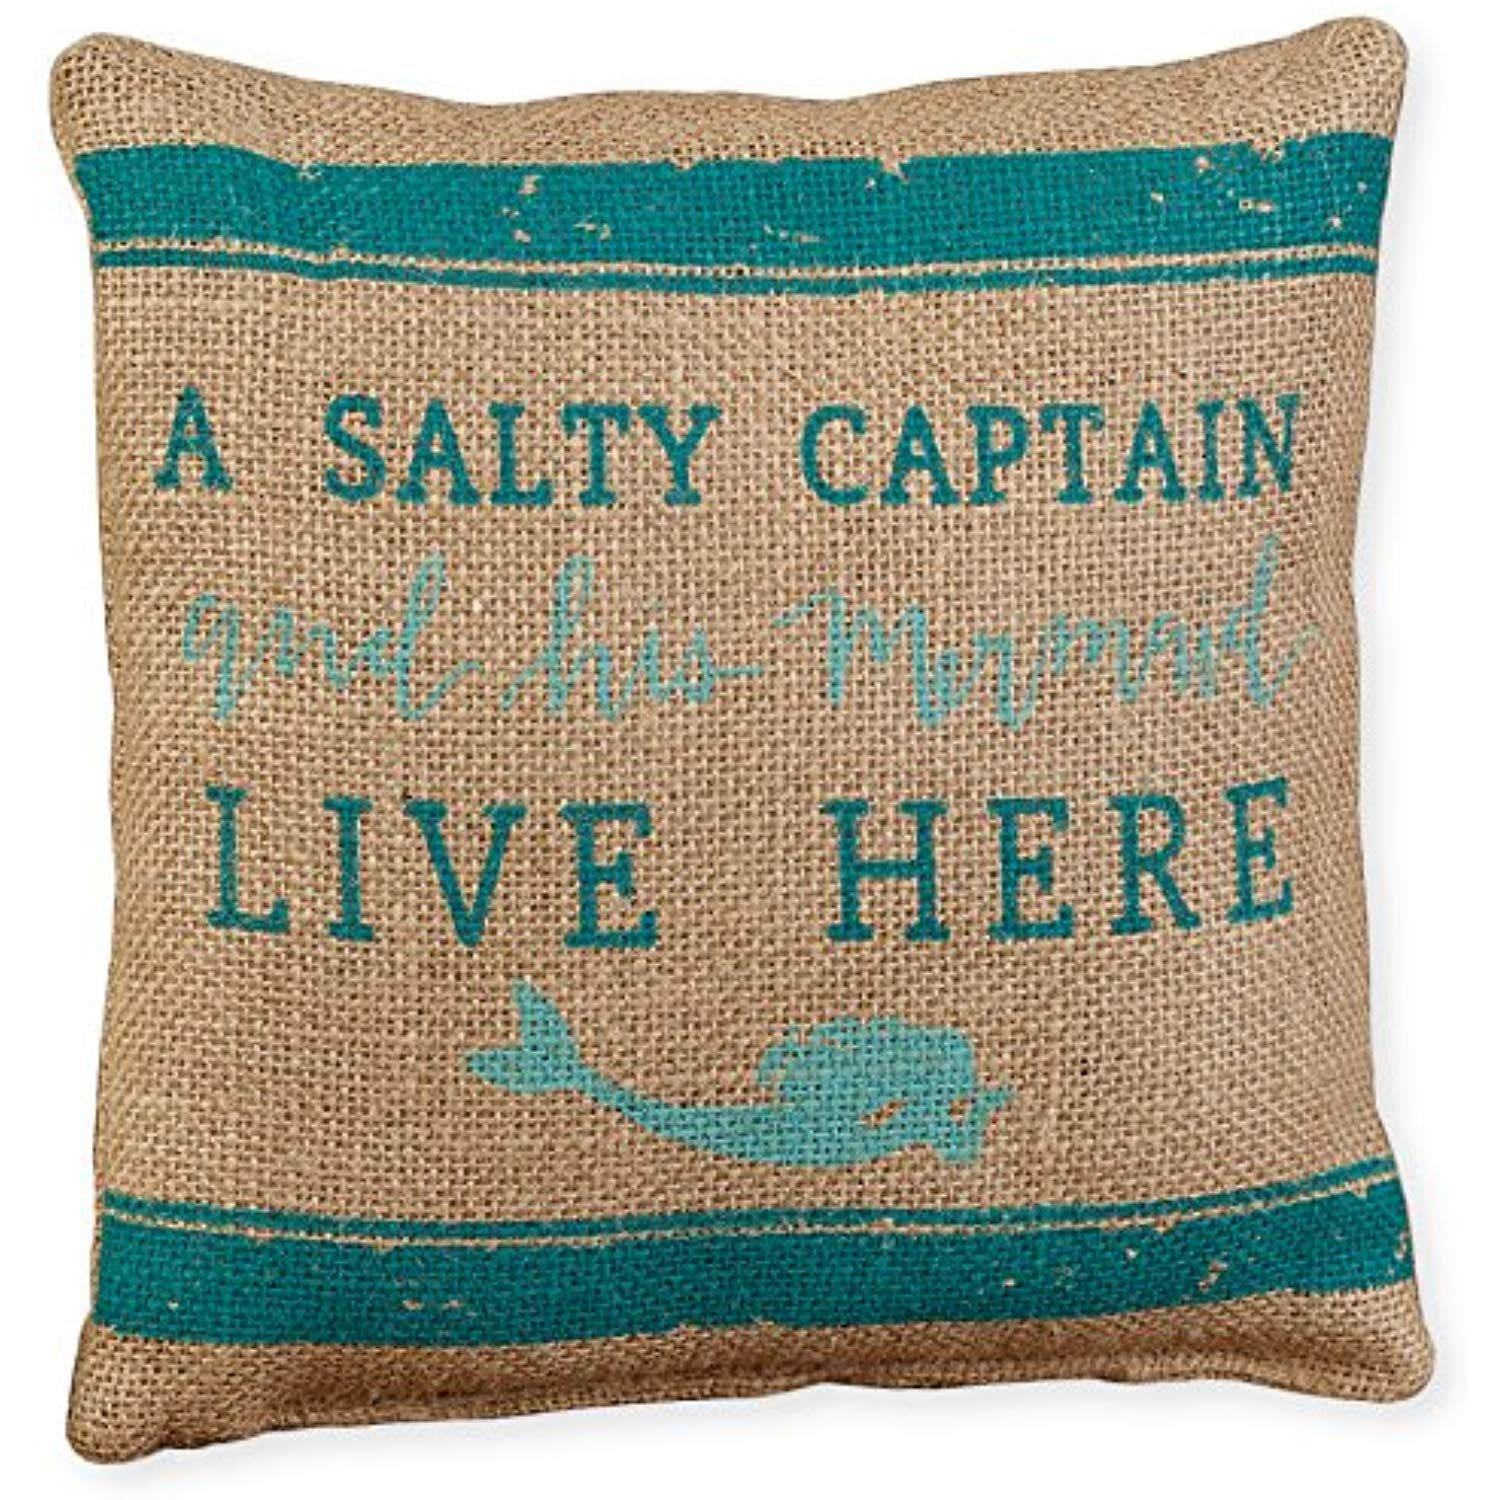 The Country House Collection Small Burlap Pillow 8 X 8 Captain Mermaid Find Out More About The Great Product At The Image Link T Burlap Pillows Decorative Pillows Pillows